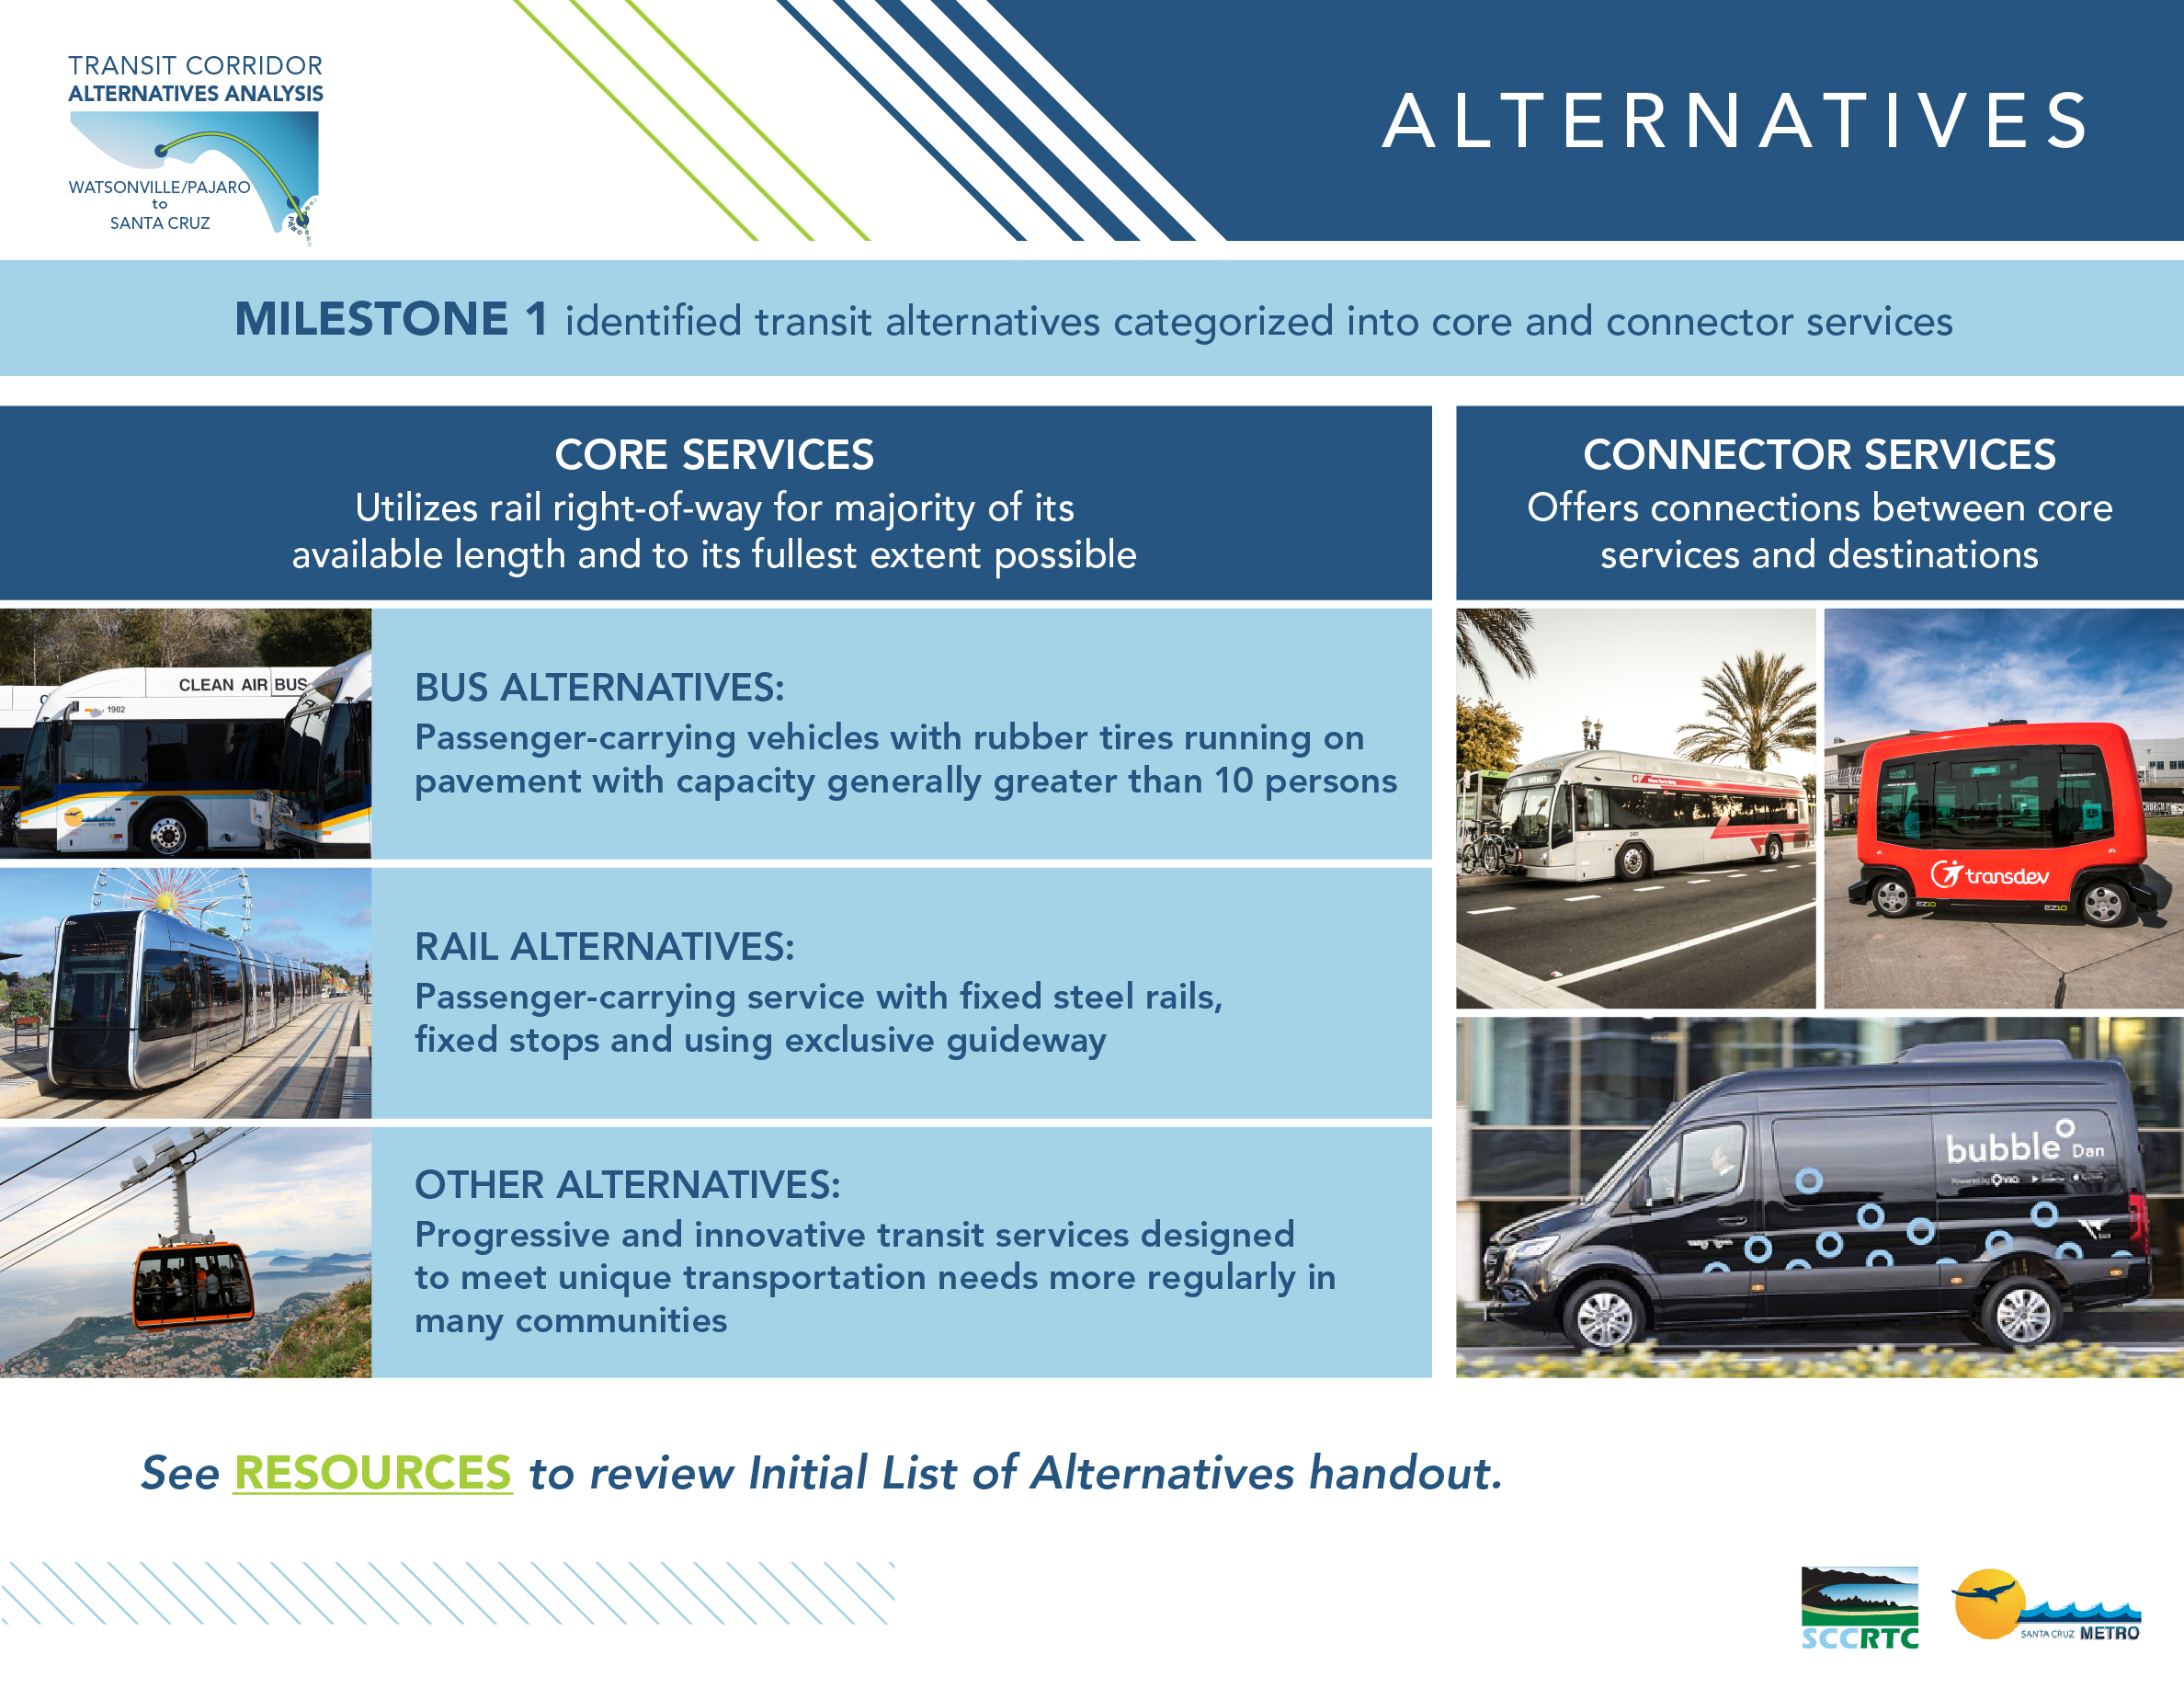 Board 3: Alternatives Milestone 1 identified transit alternatives categorized into core and connector services. CORE SERVICES Utilizes rail right-of-way for majority of its available length and to its fullest extent possible • Bus Alternatives: Passenger – carrying vehicles with rubber tires running on pavement with capacity generally greater than 10 persons. • Rail Alternatives: Passenger – carrying service with fixed steel rails, fixed stops and using exclusive guideway • Other Alternatives: Progressive and innovative transit services designed to meet unique transportation needs more regularly in many communities. CONNECTOR SERVICES Offers connections between core services and destination. See Resources to review full Alternatives Handout.